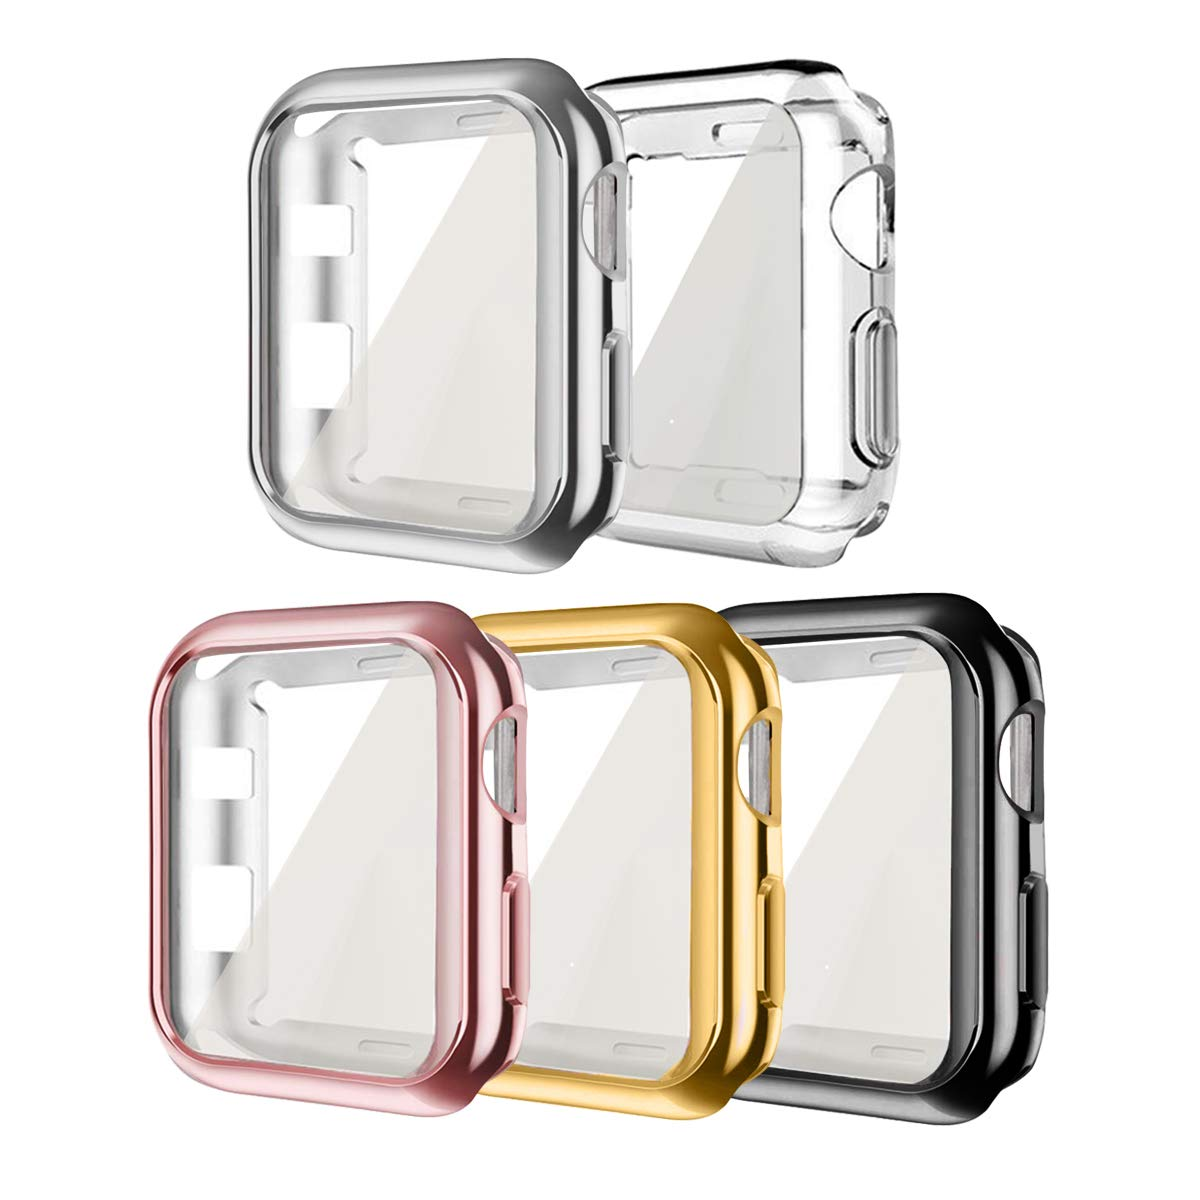 Compatible for Apple iWatch Case 38mm, 5 Pack hd Clear Ultra-Thin Screen Protector TPU All-Around Full Front Protective Case Cover Compatible for Apple Watch Series 3 Series 2 (5Pack, 38mm) by MALE COUSIN